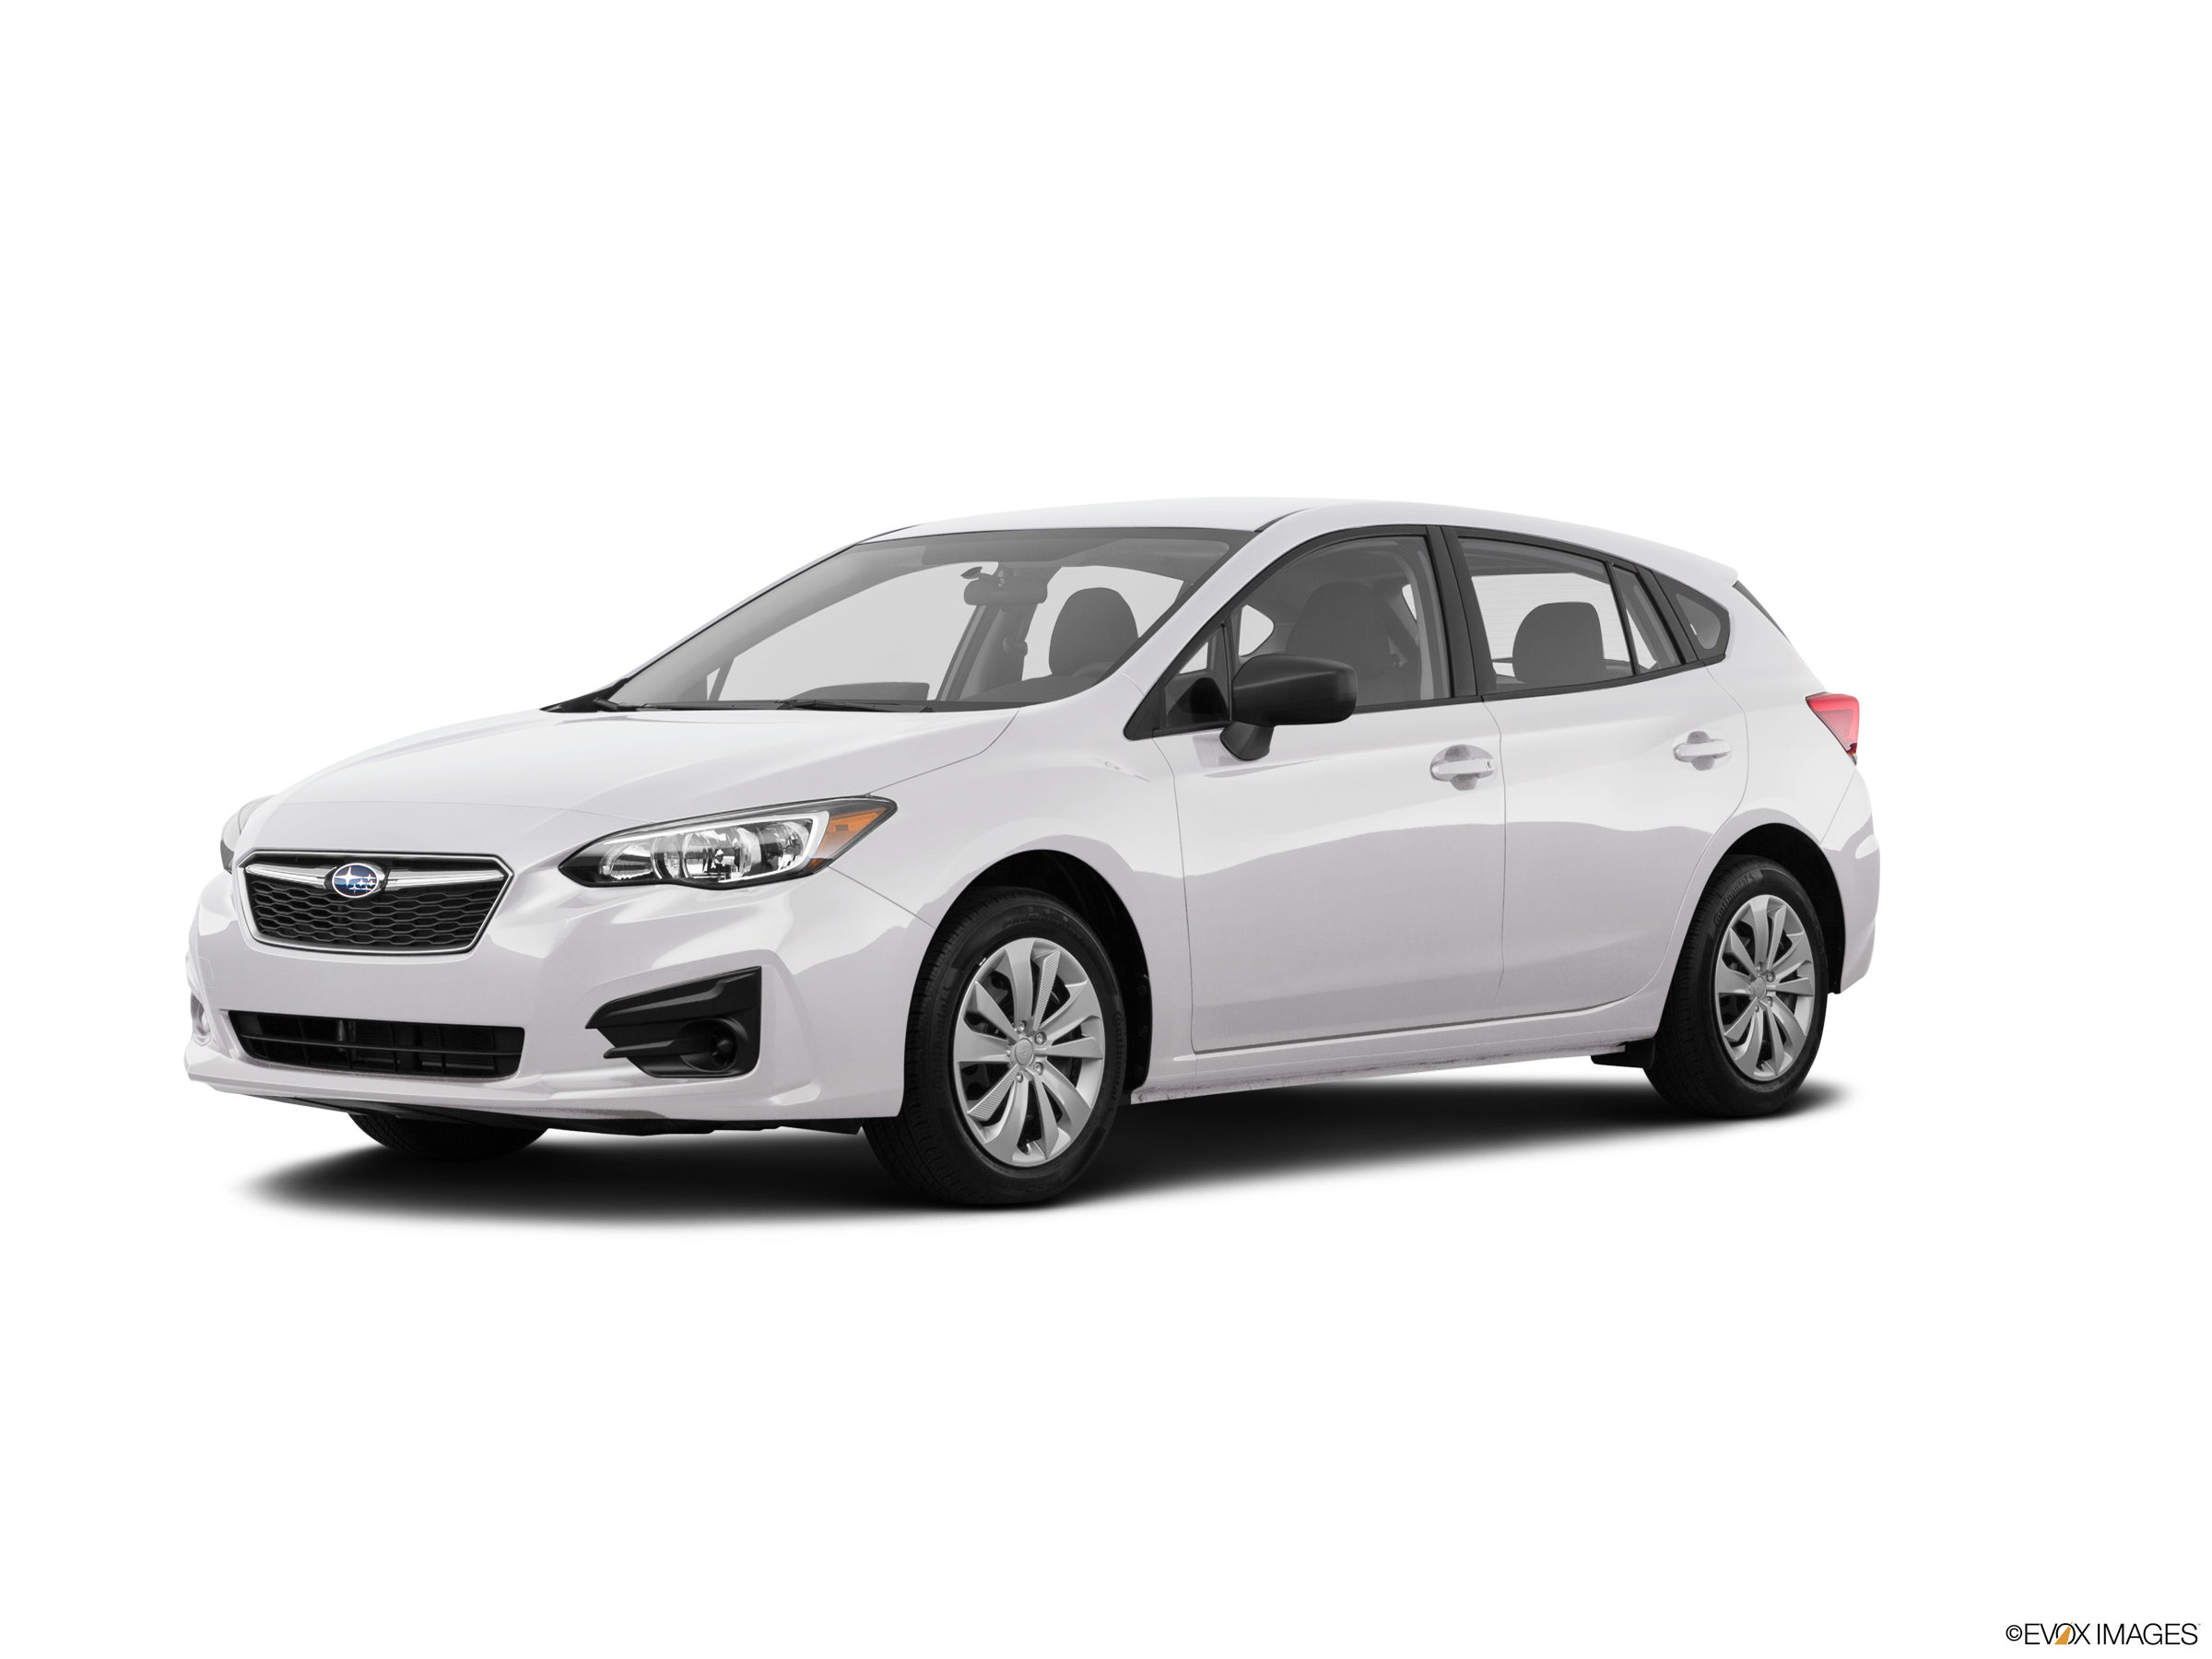 Top Expert Rated Wagons of 2018 - 2018 Subaru Impreza